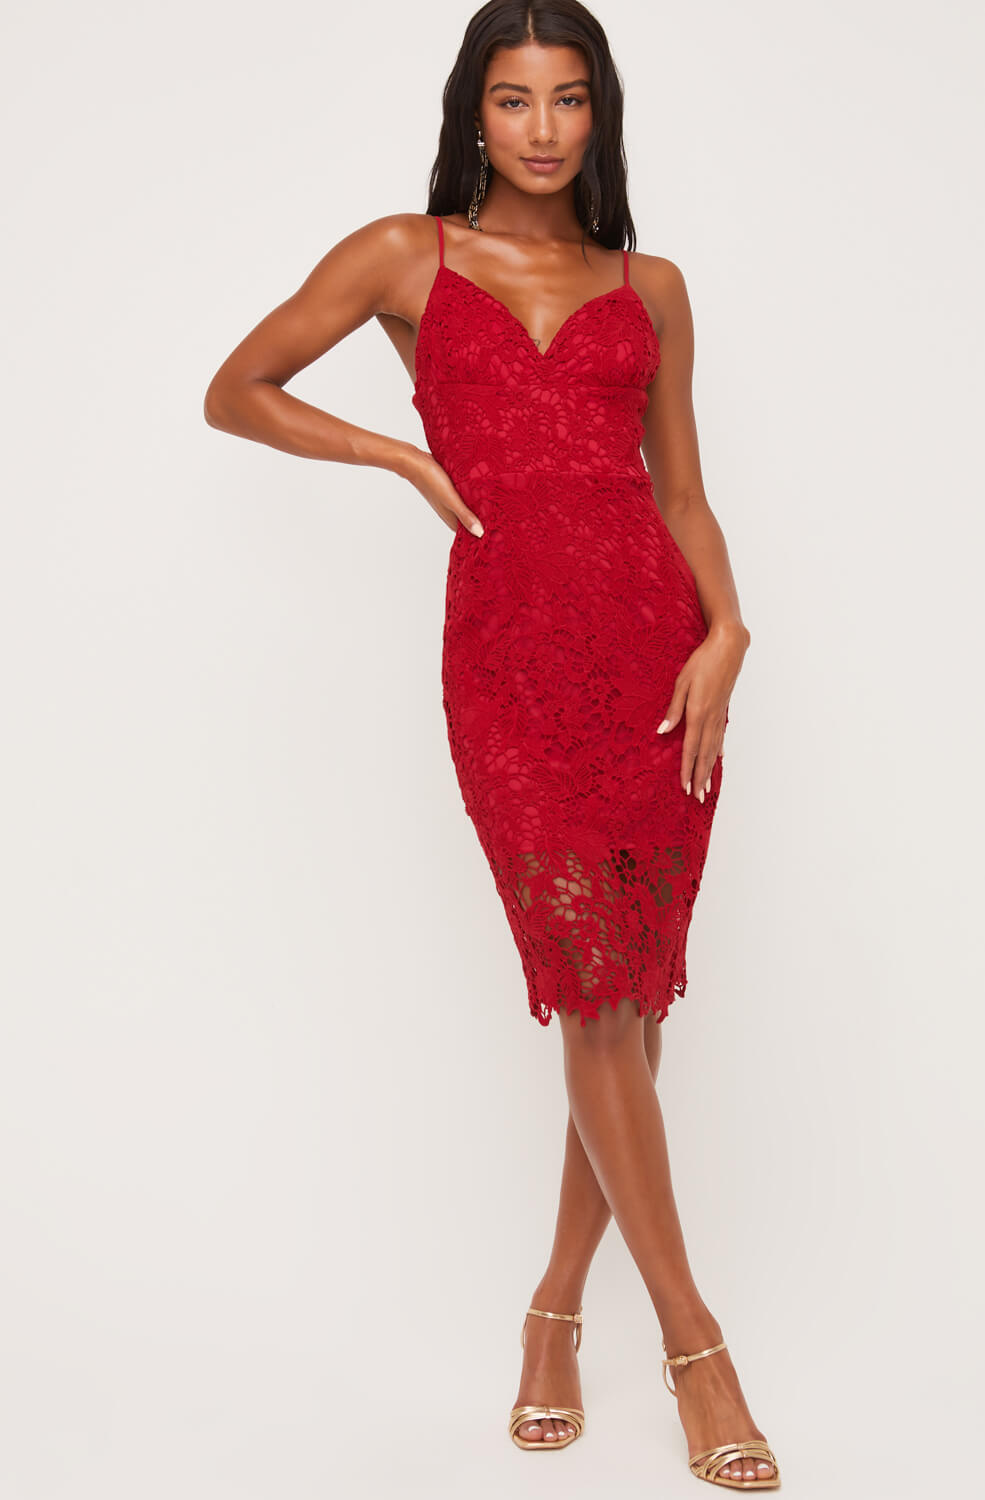 Lady In Red Lace Dress